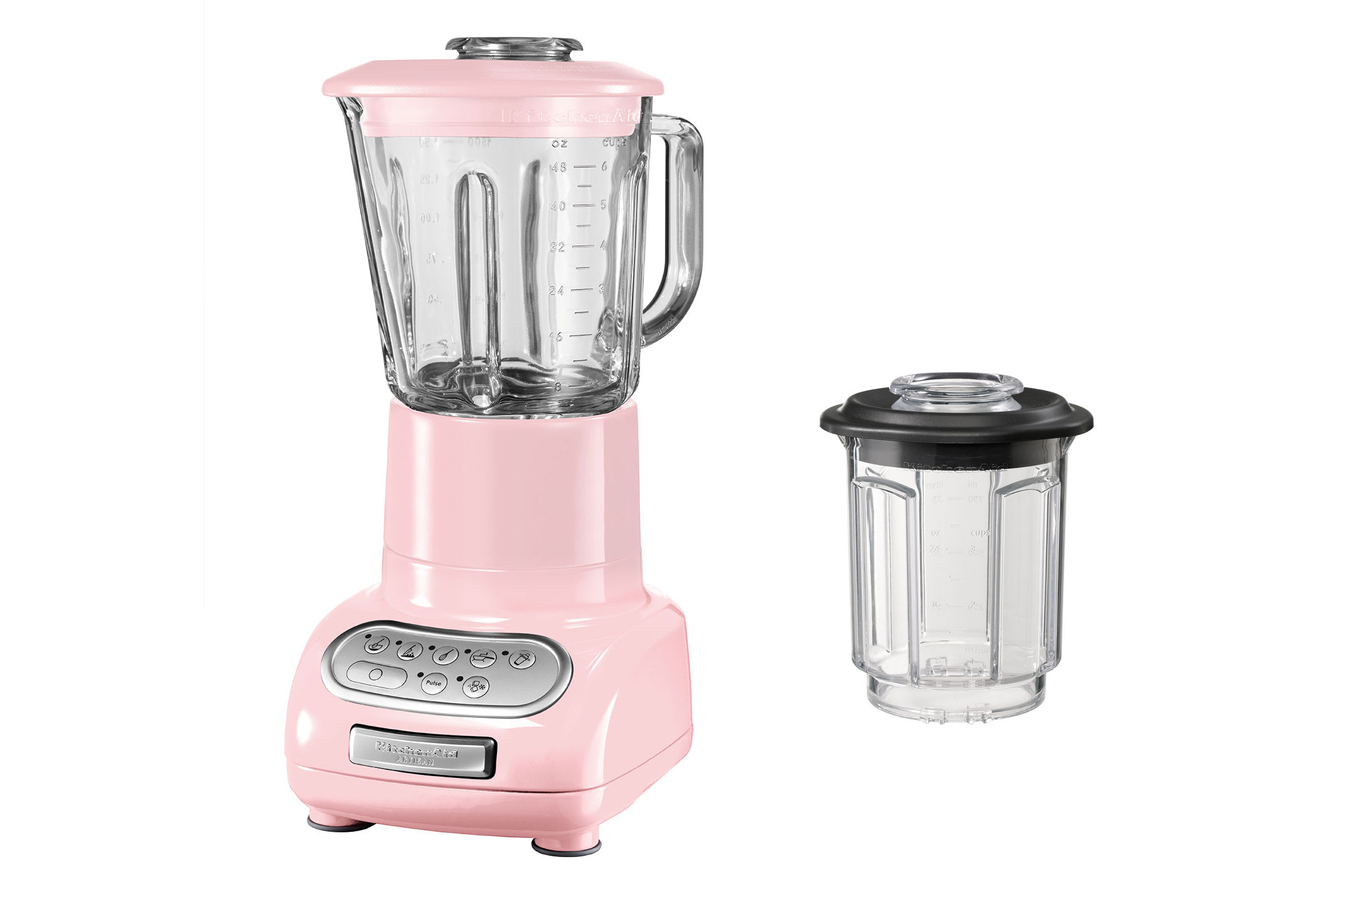 prix blender kitchenaid table de cuisine